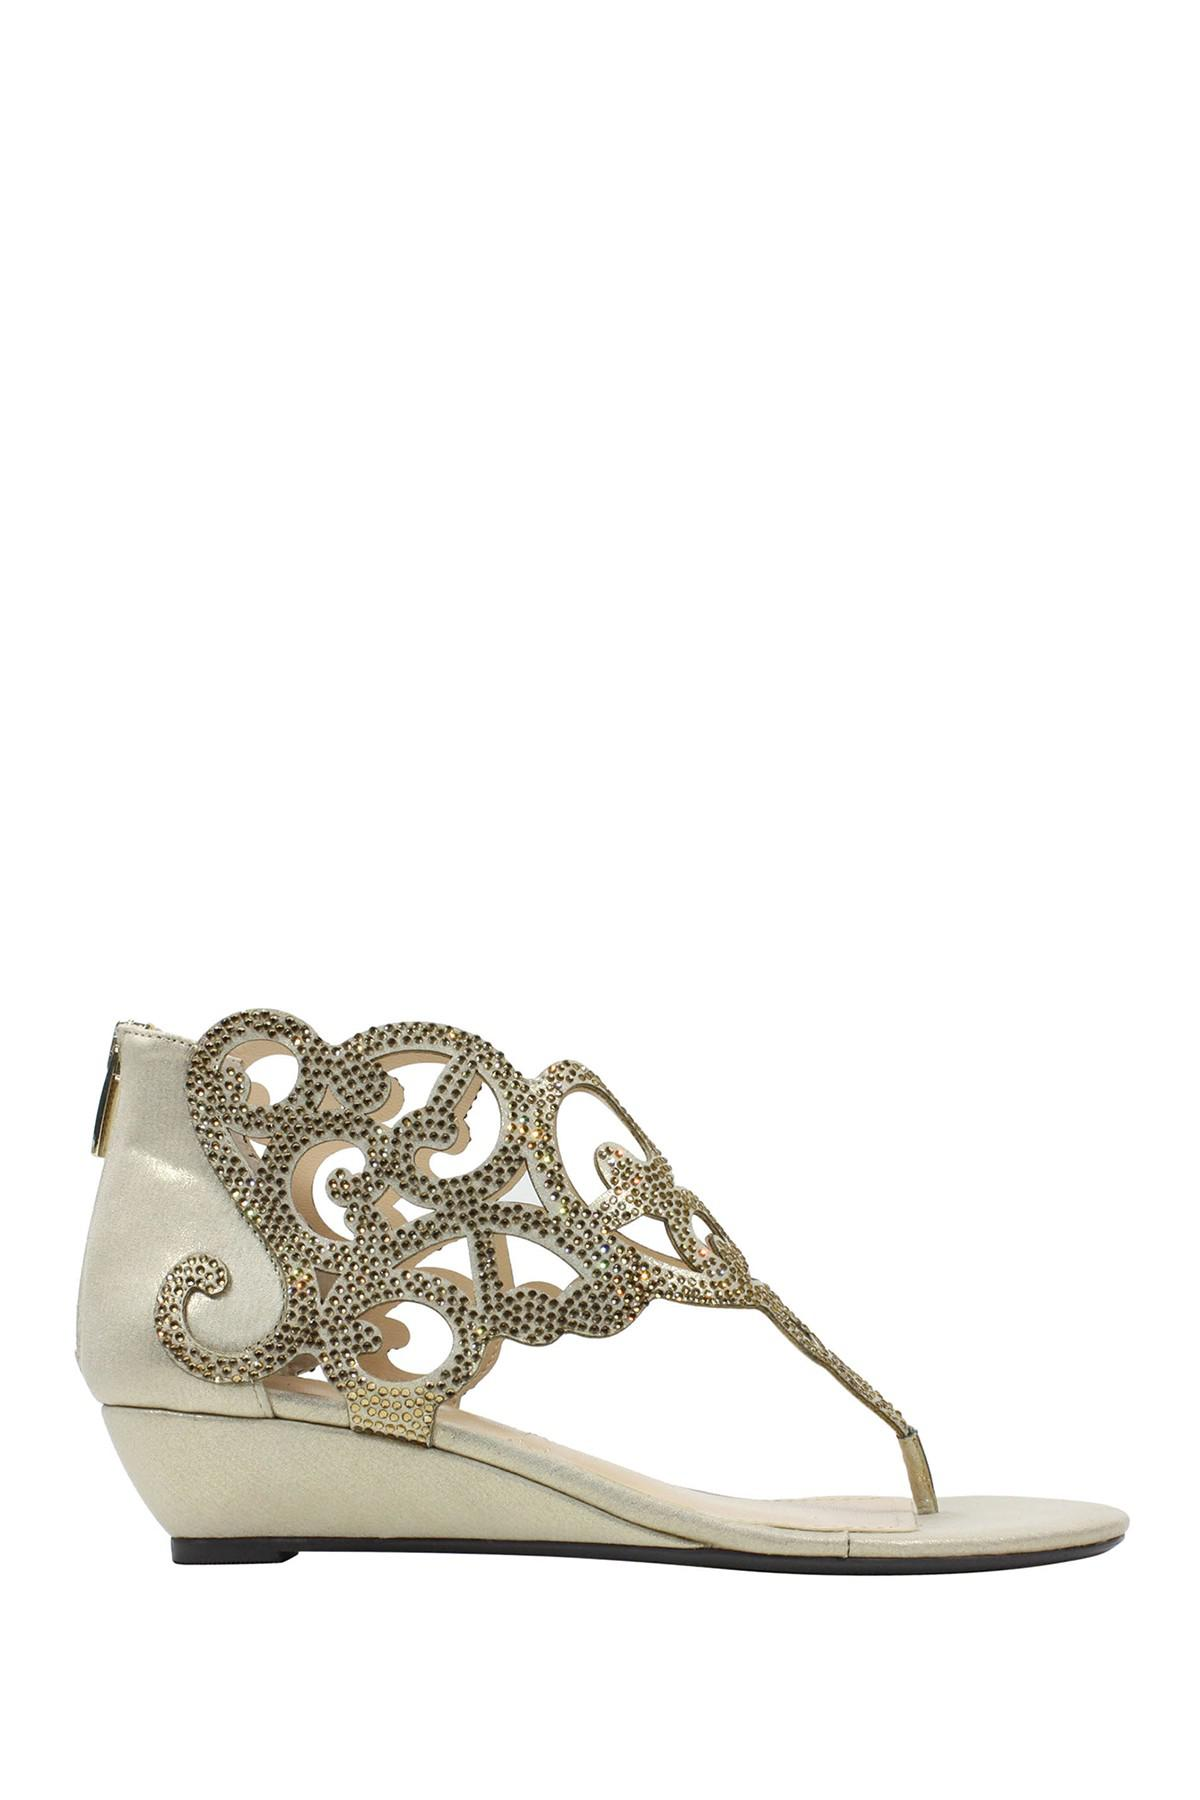 J. Renee Minka Satin and Rhinestone Wedge Sandals rNHsjk